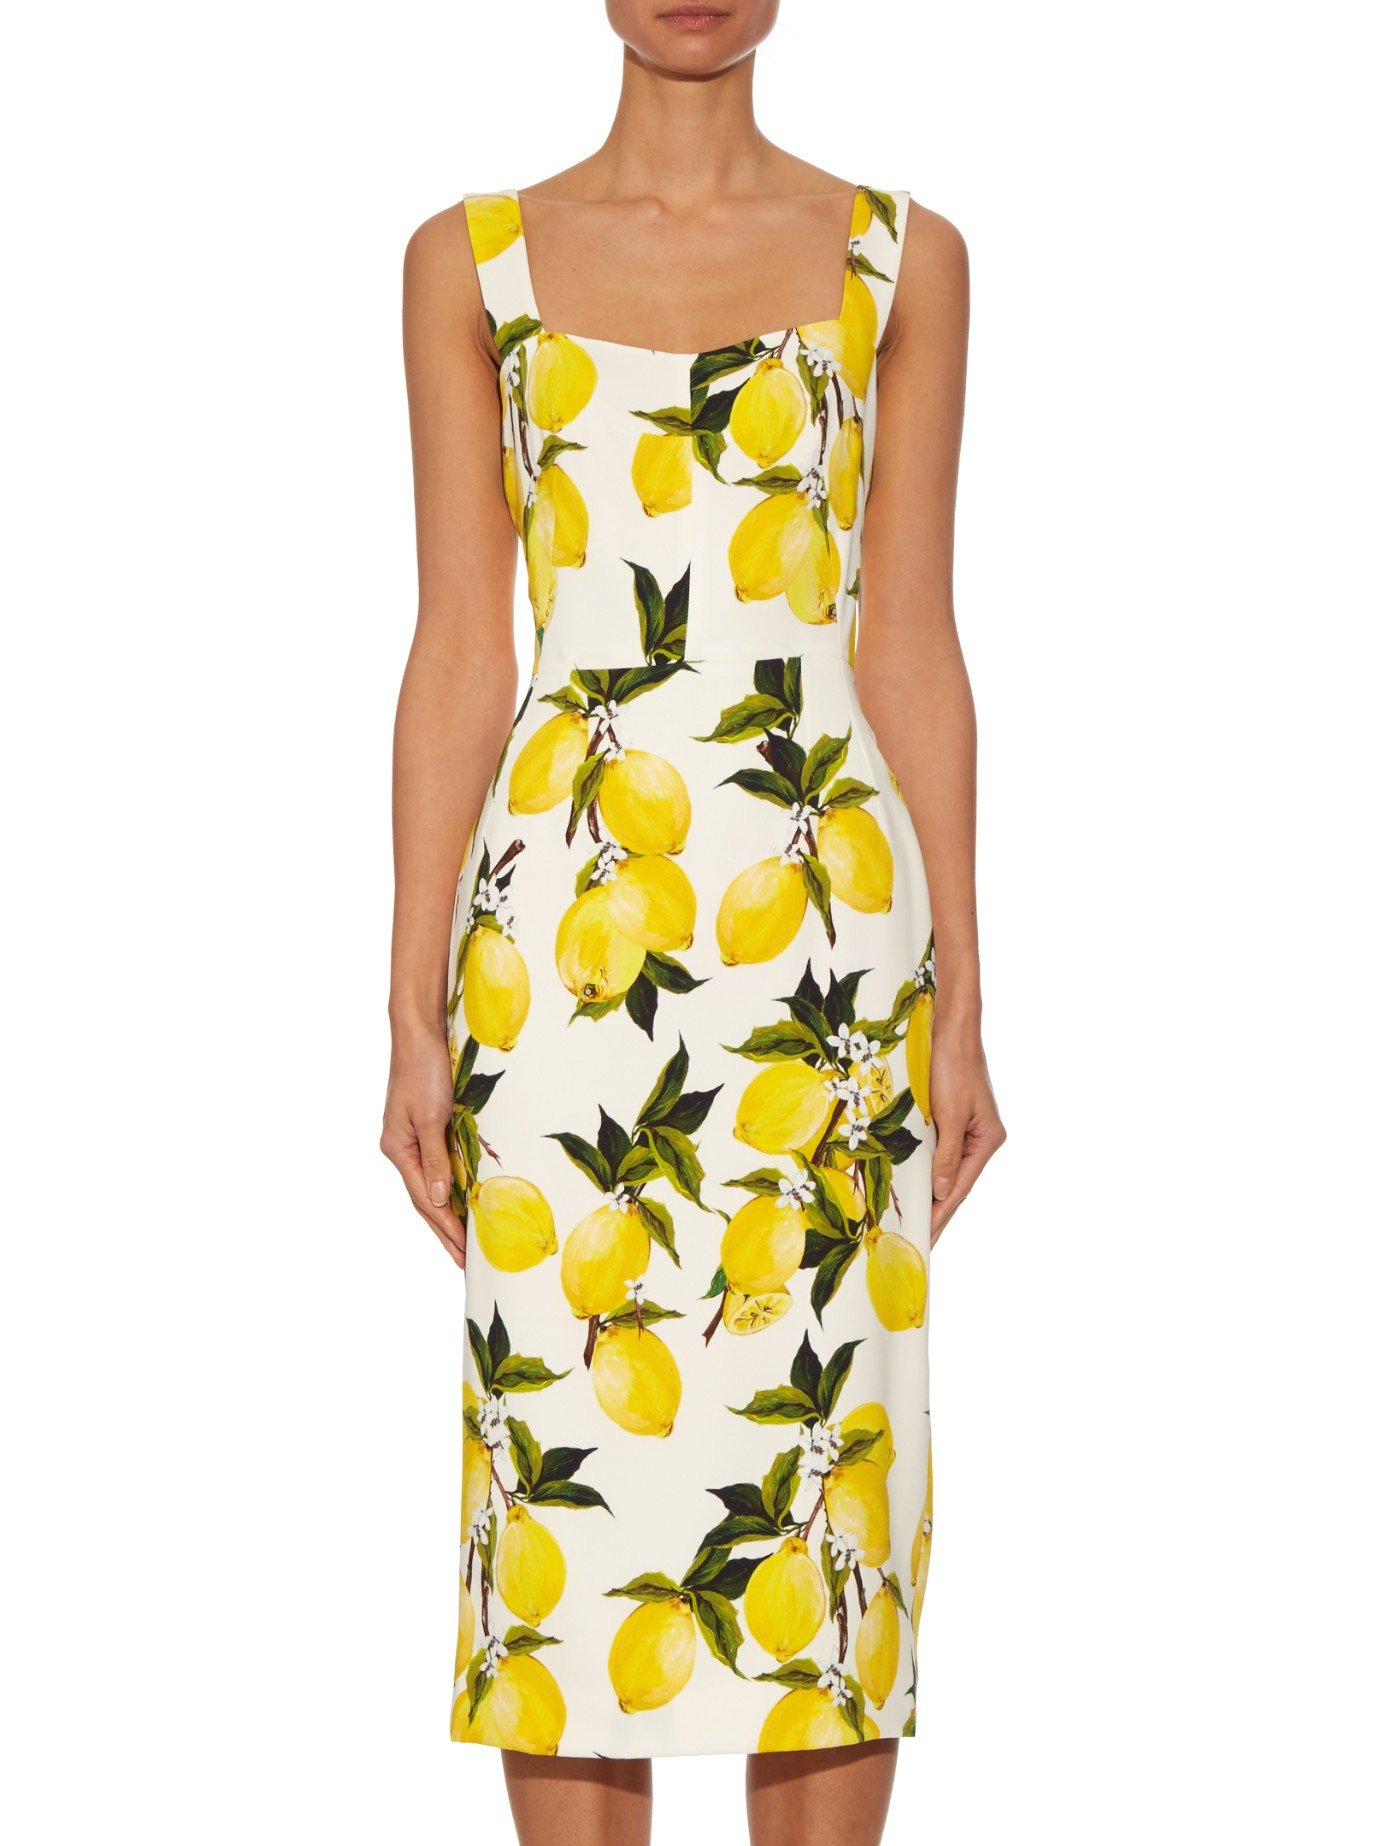 Dolce u0026 gabbana Lemon-print Crepe Dress in Yellow | Lyst